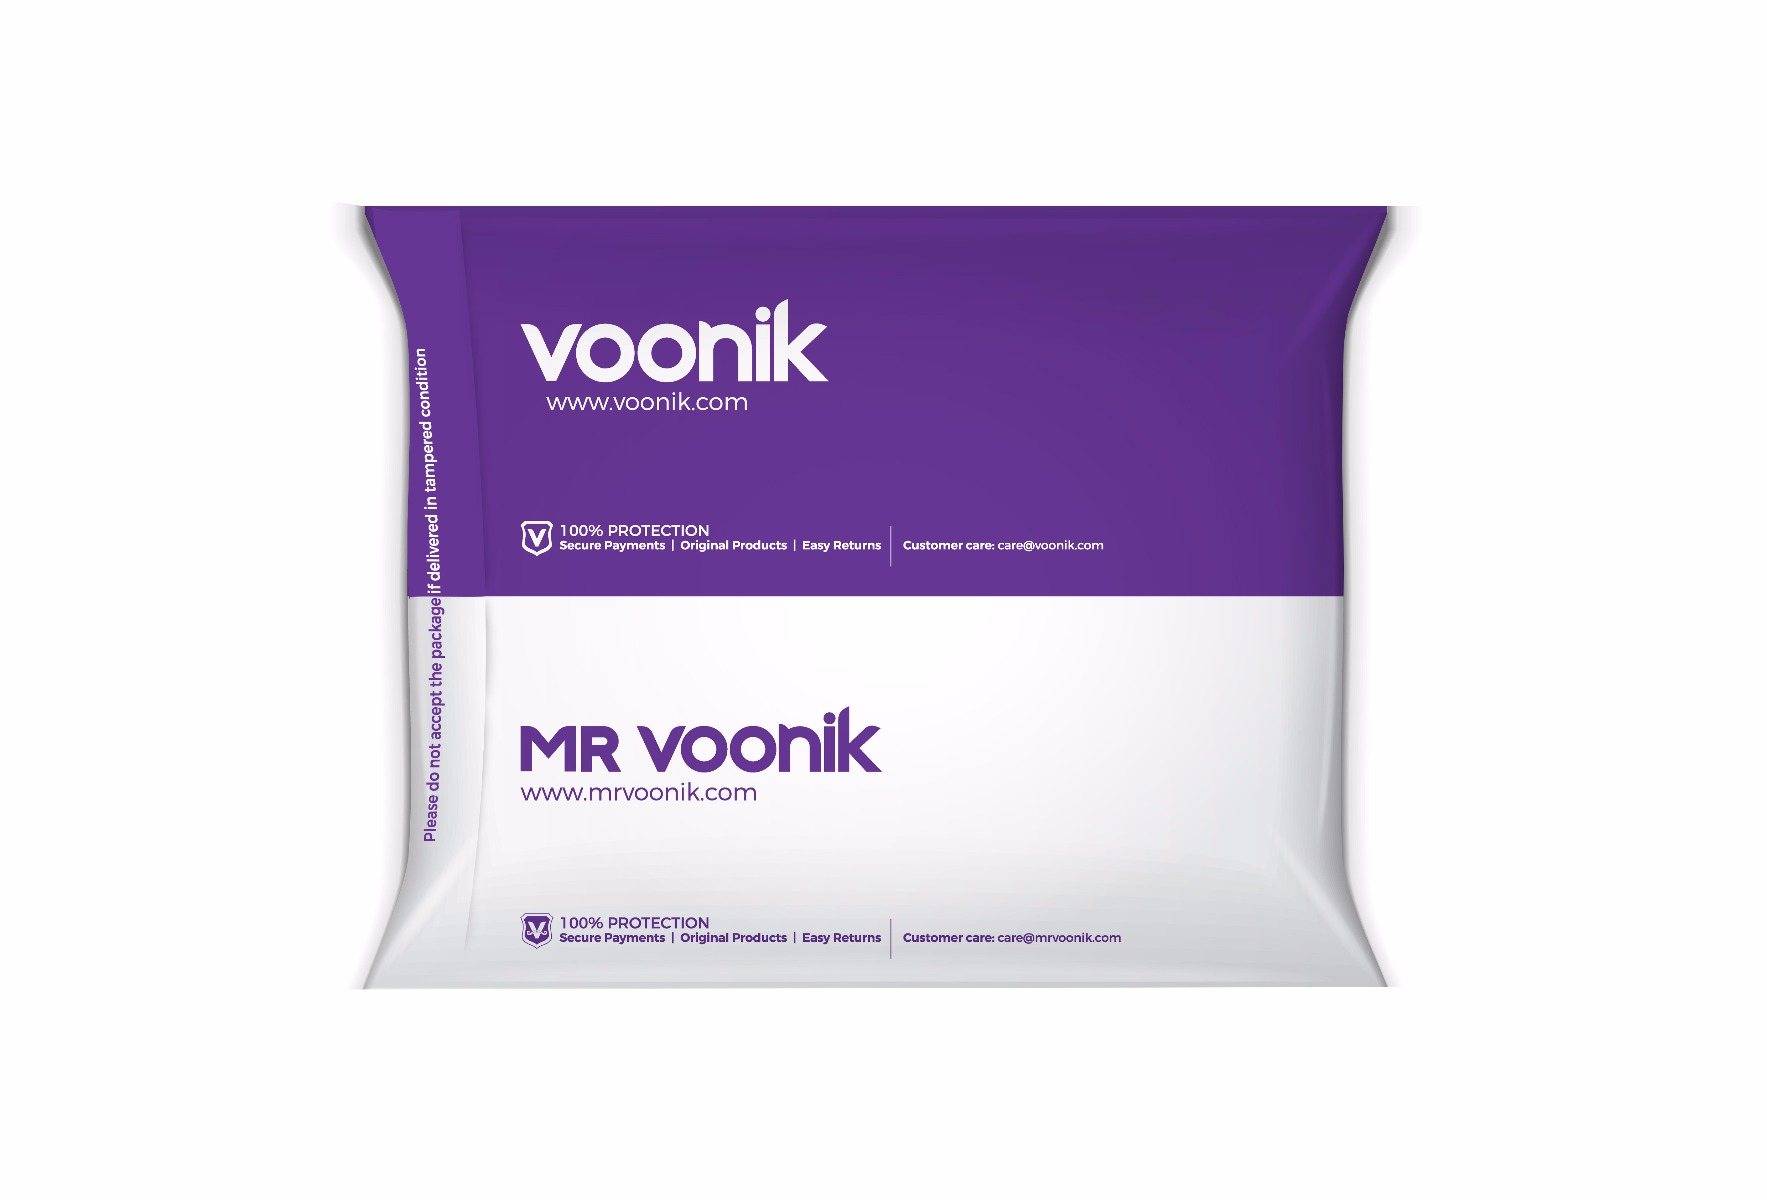 Voonik Branded Packaging